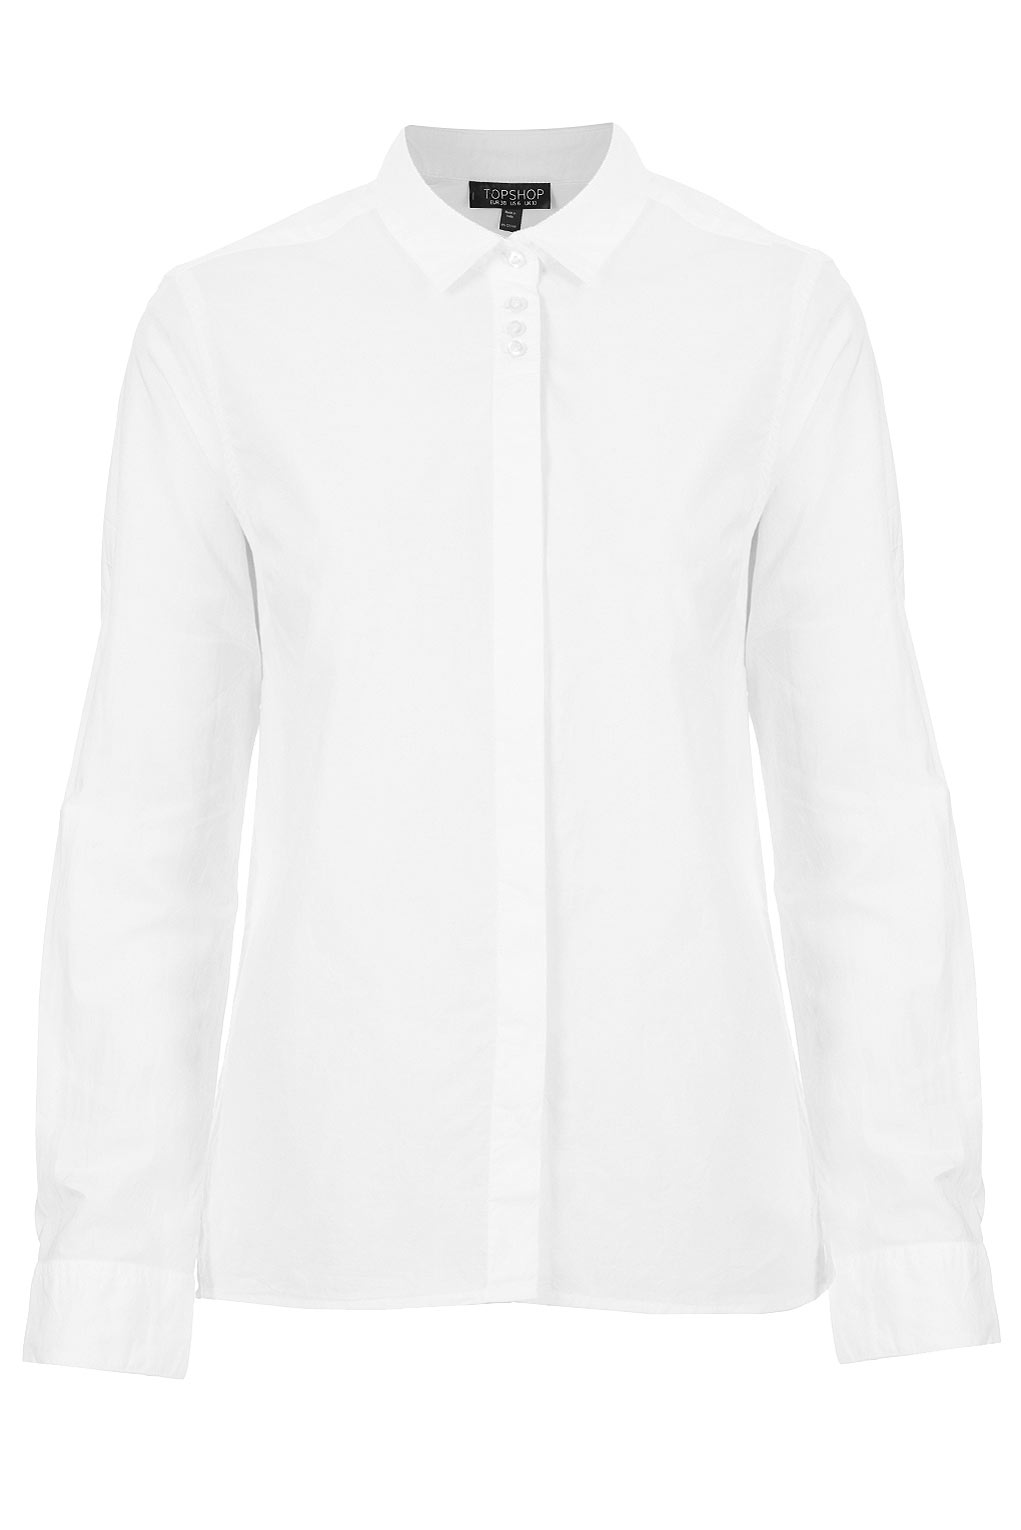 Topshop Long Sleeve White Shirt in White | Lyst